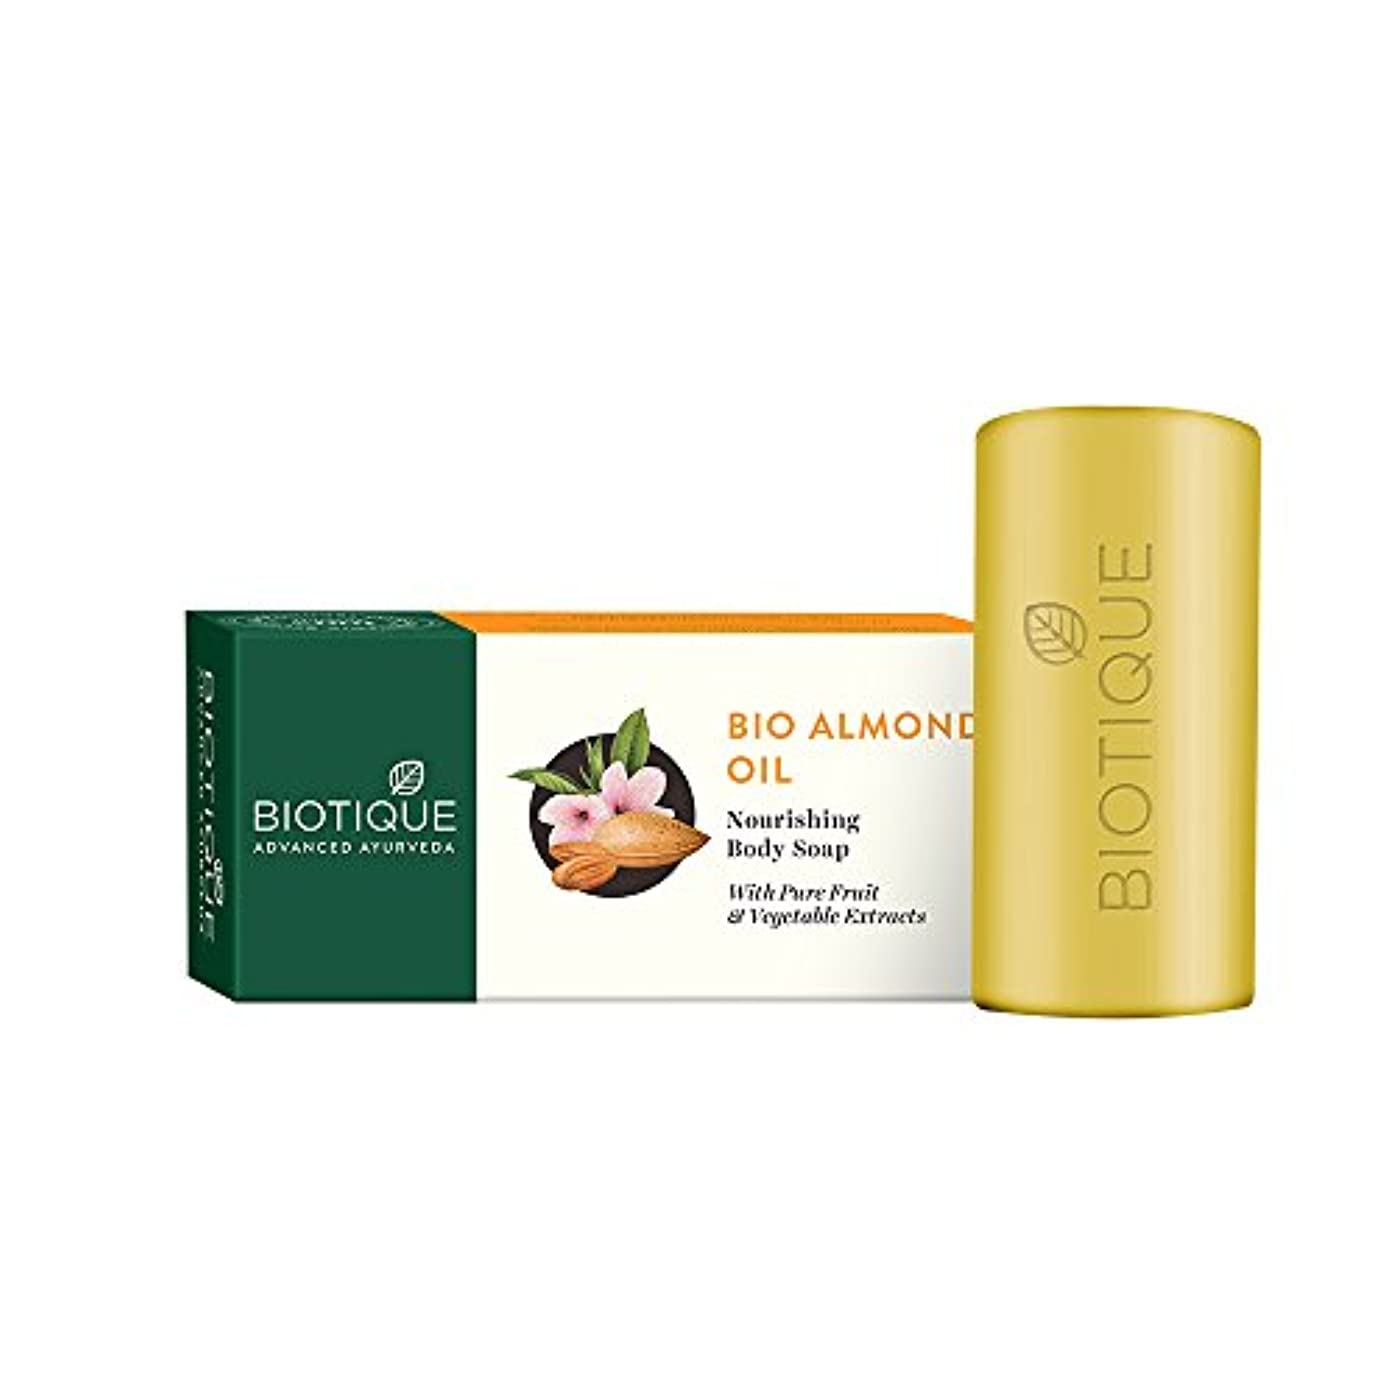 研磨剤特別に海藻Biotique Pure Vegetable Cleanser - Almond Oil Soap 150g